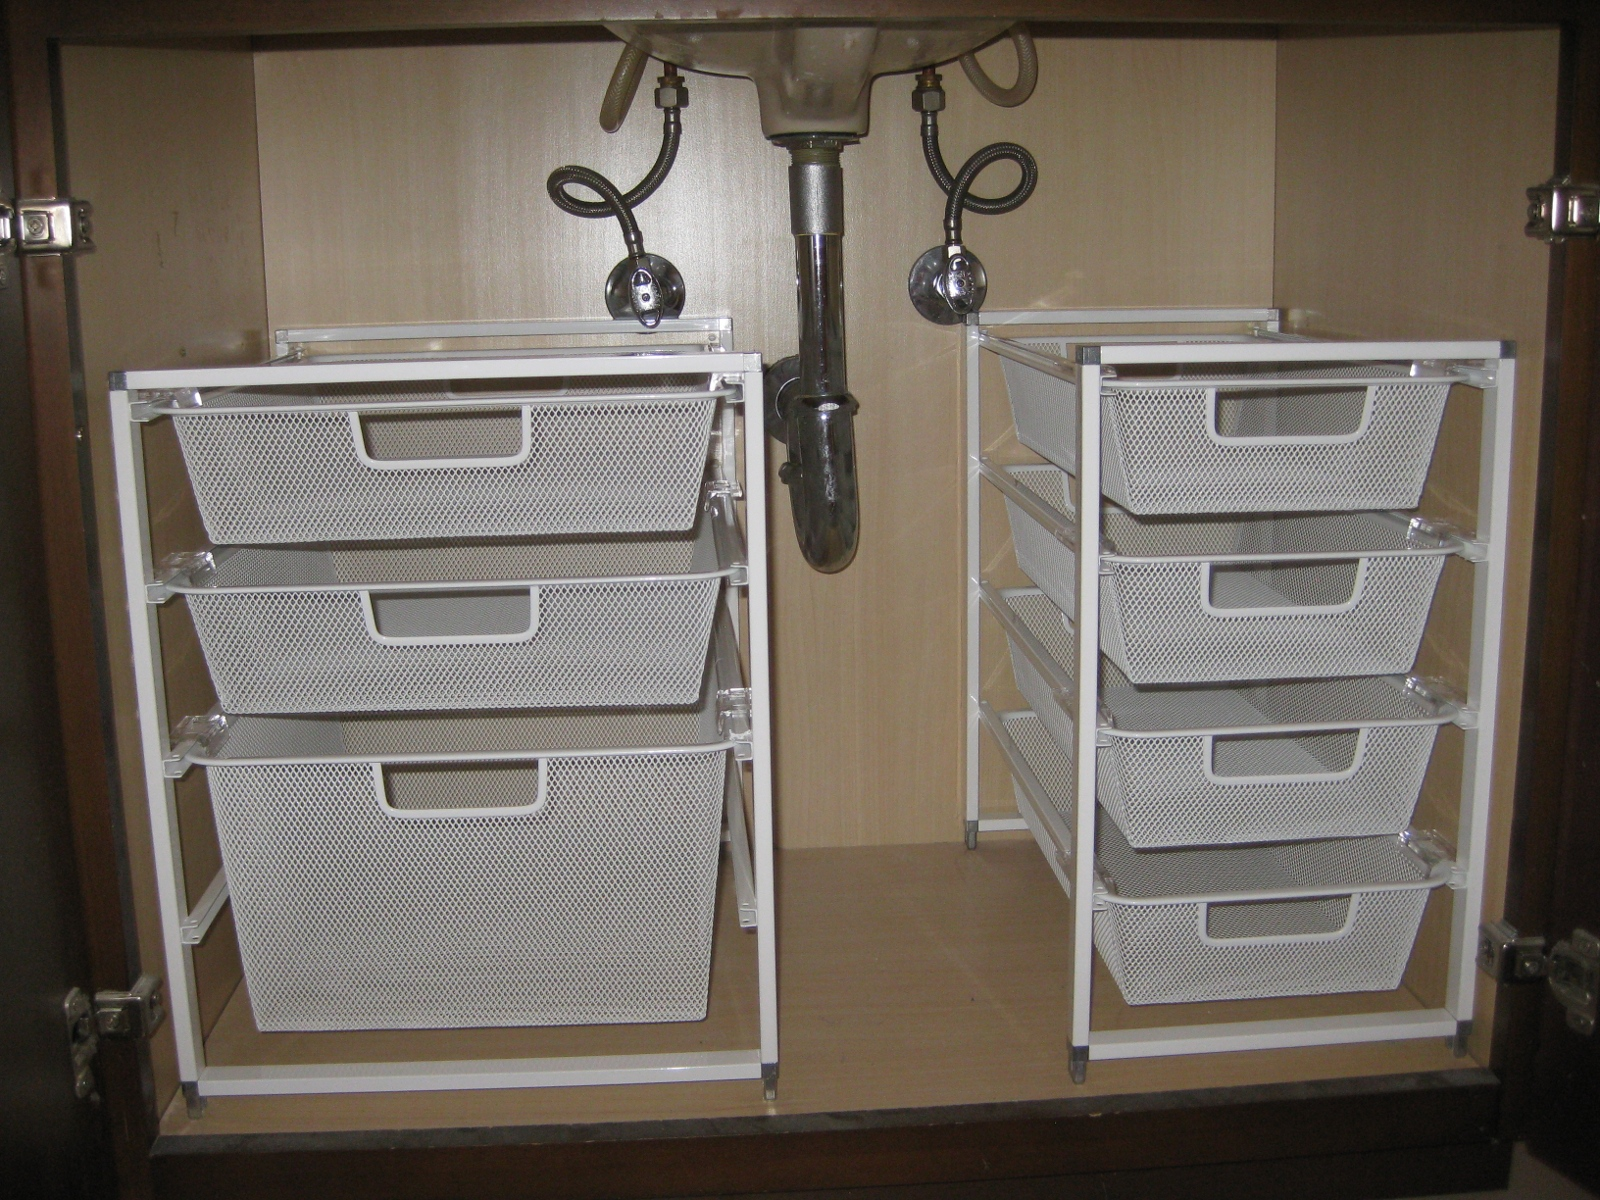 Original Storage I Installed Six Of These Open Front Stackable Storage Bins Awesome Ideas